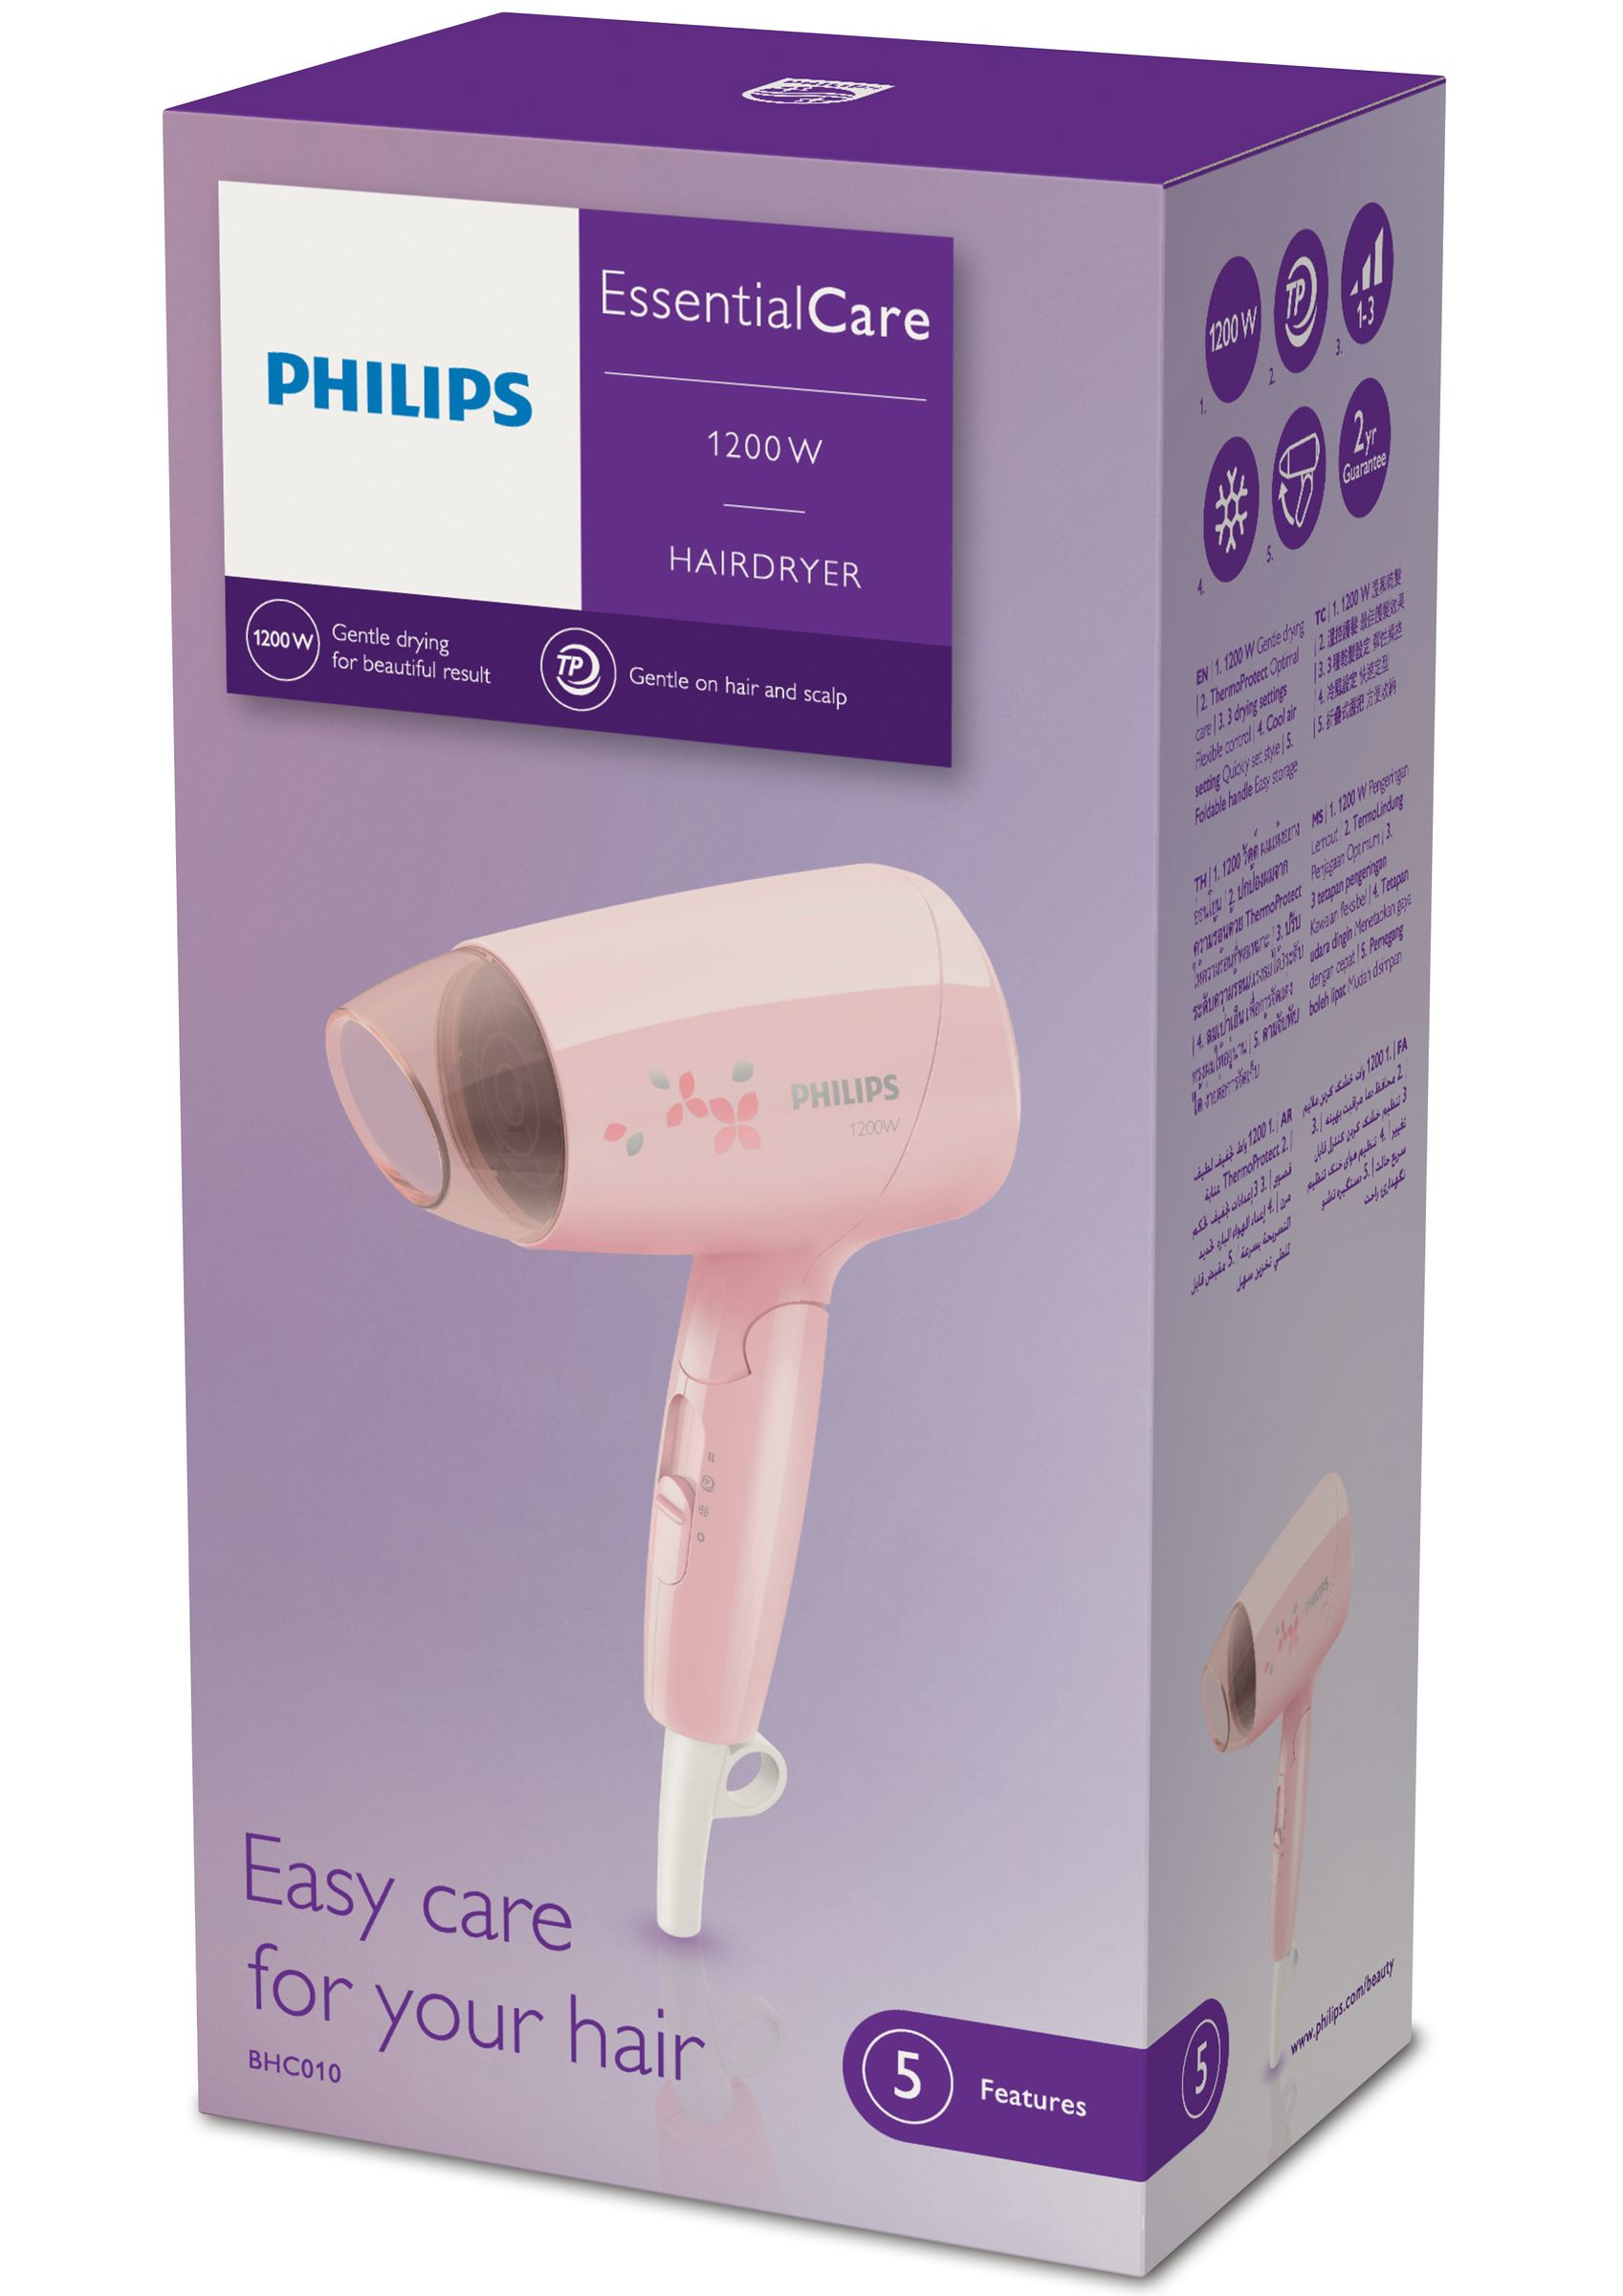 Philips Essential Care Asciugacapelli BHC010/00